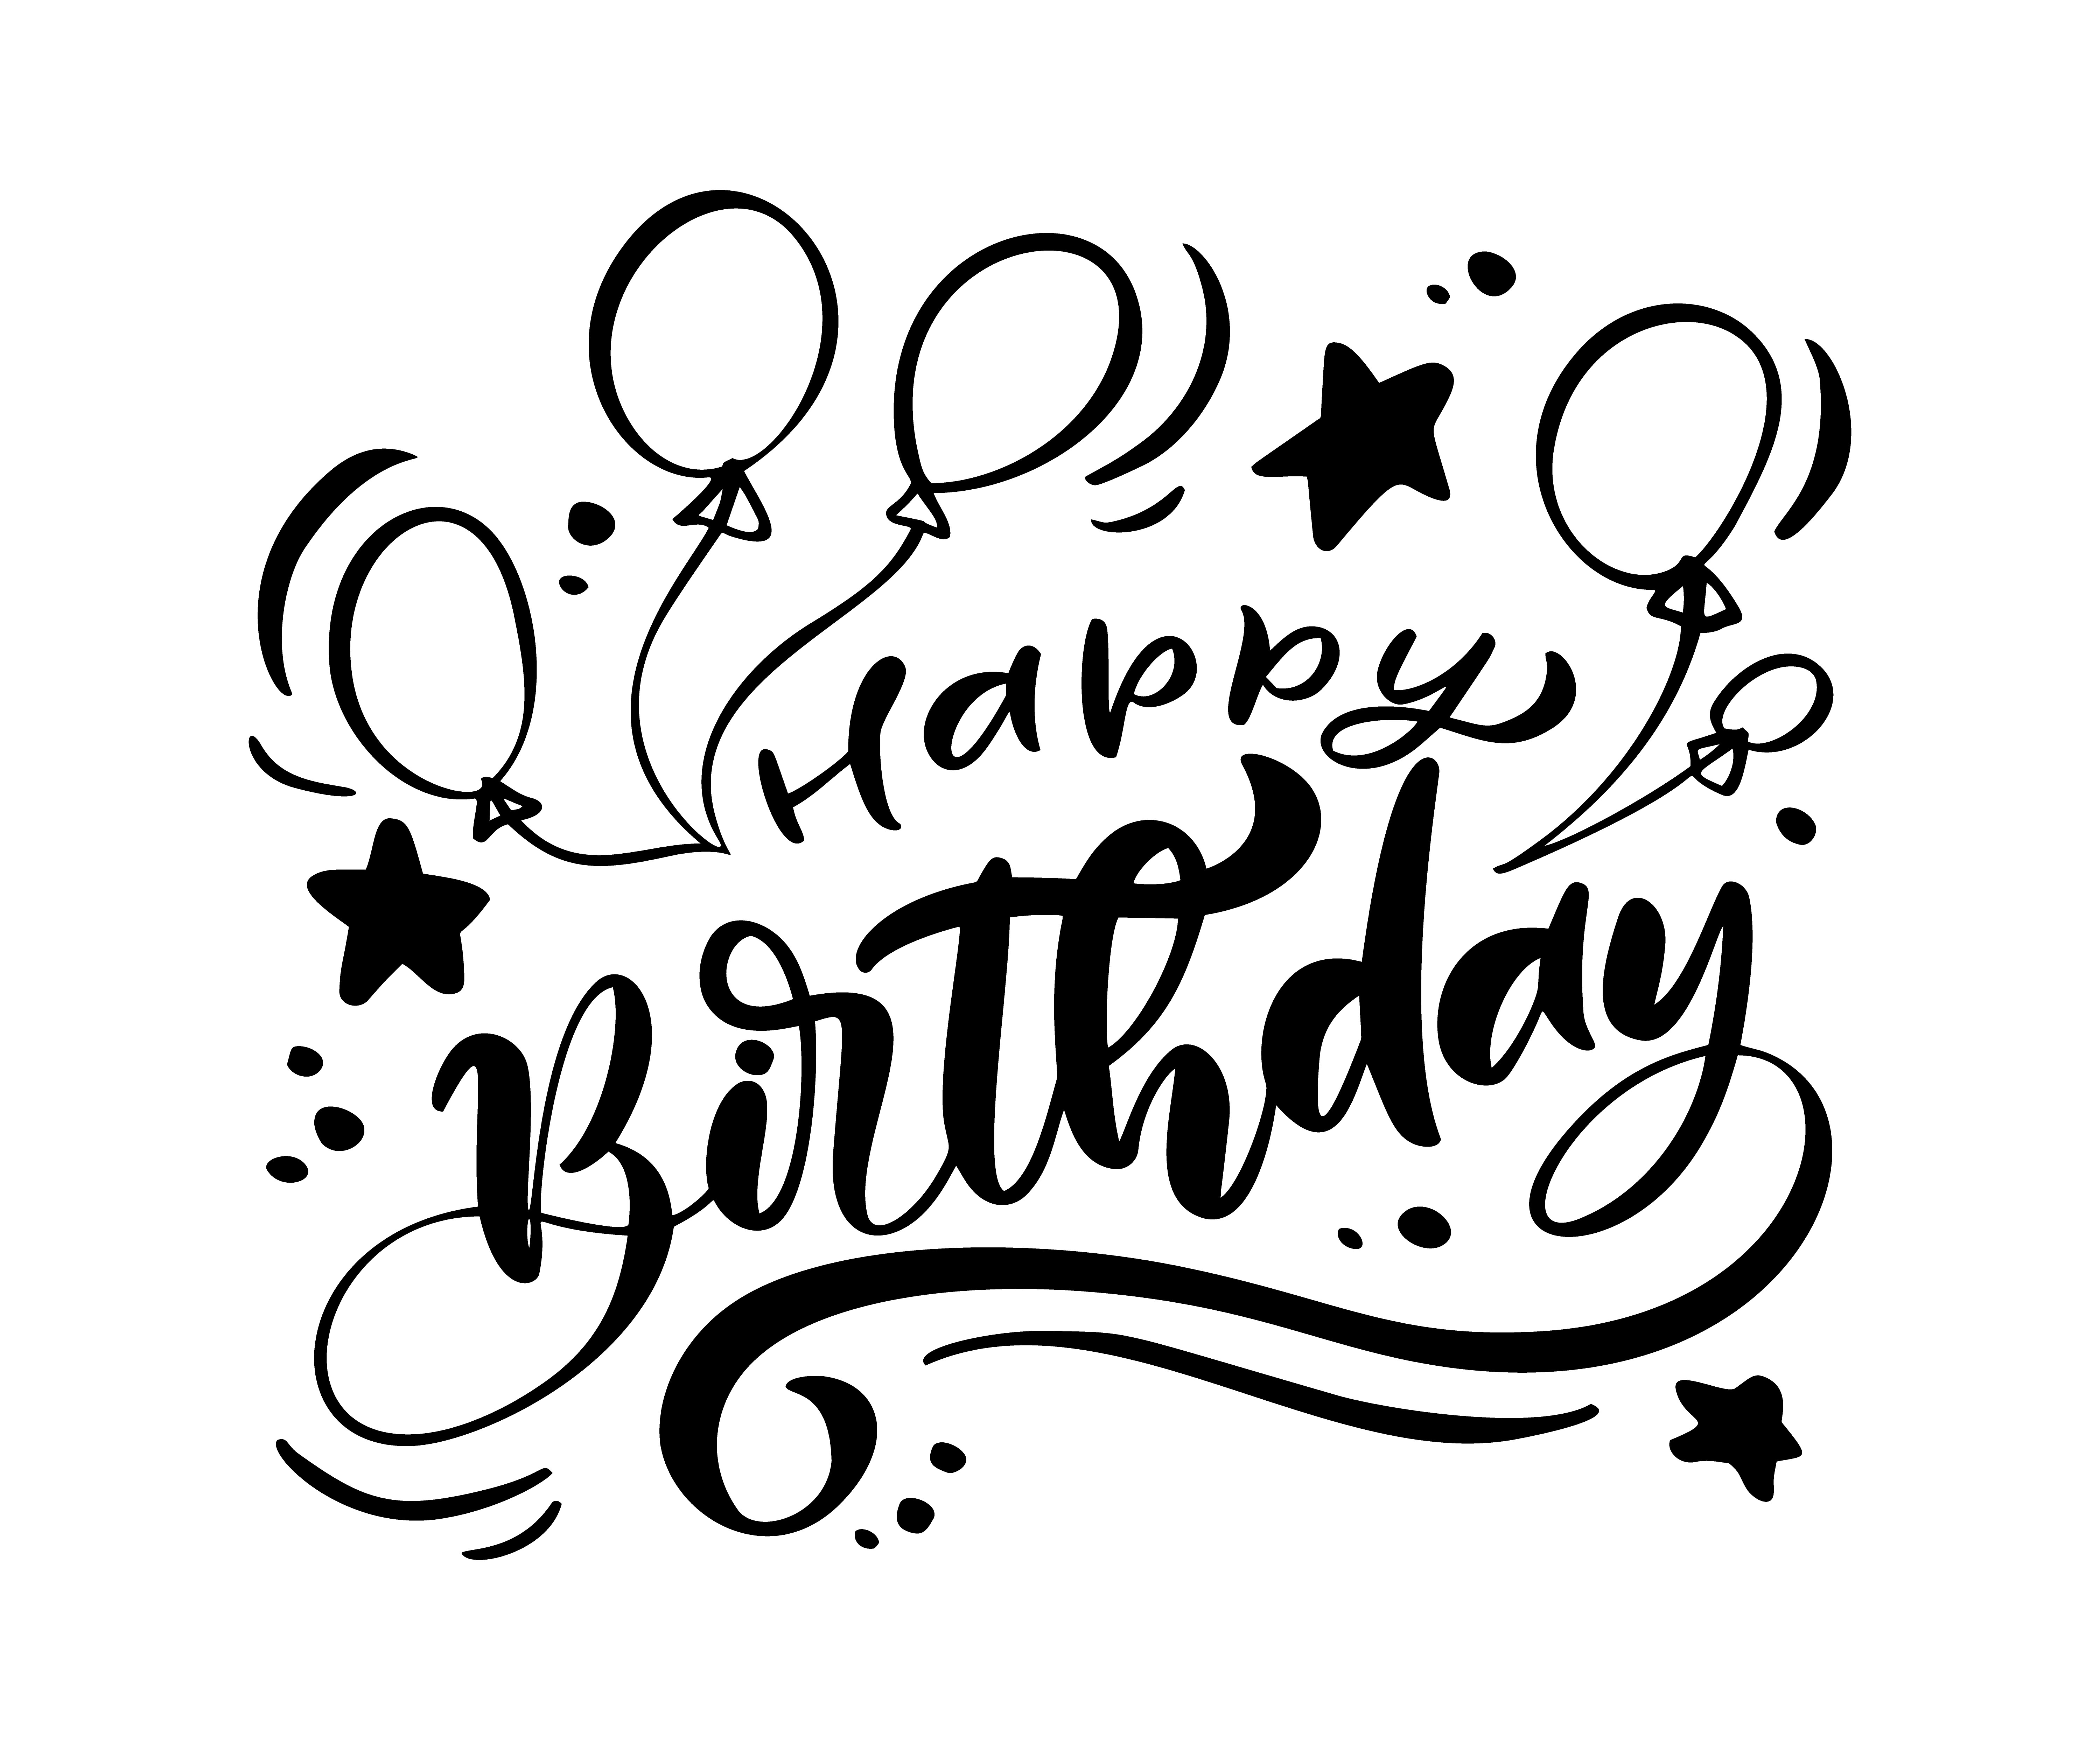 Vector Illustration Handwritten Modern Brush Lettering Of Happy Birthday Text On White Background Hand Drawn Typography Design Greetings Card 530692 Vector Art At Vecteezy